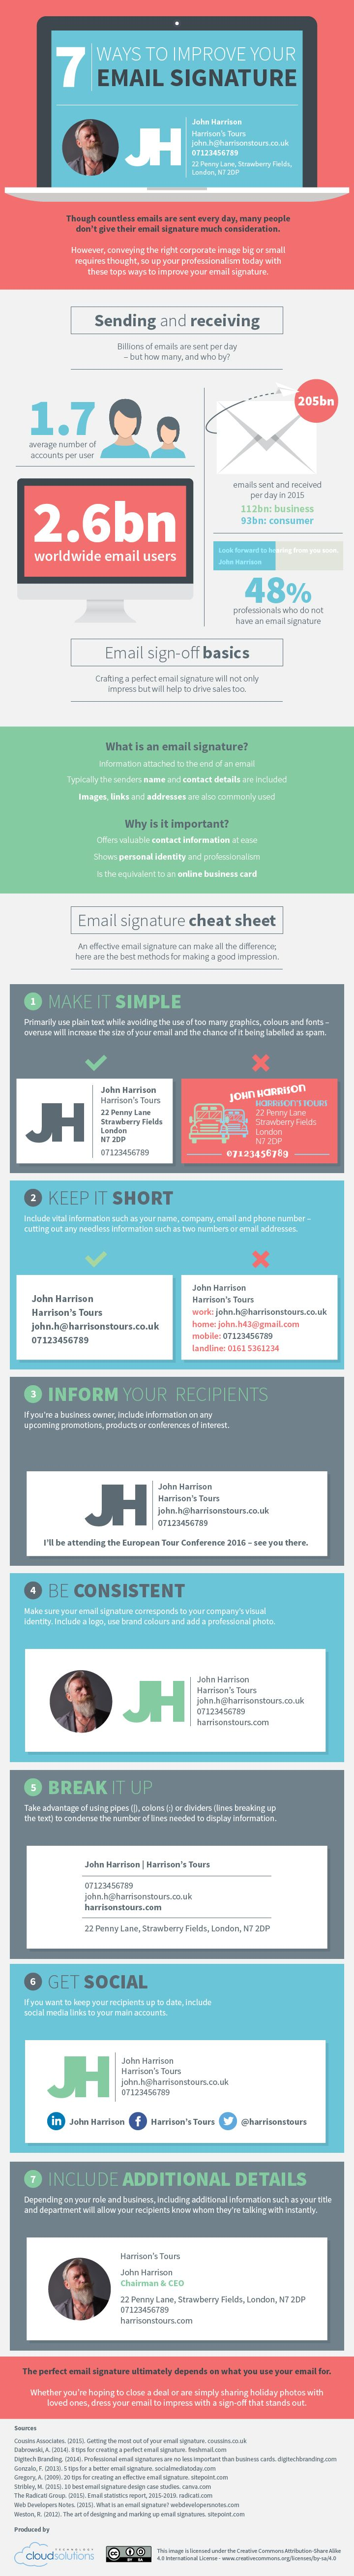 7 Tips for Creating Perfect Email Signatures - #infographic